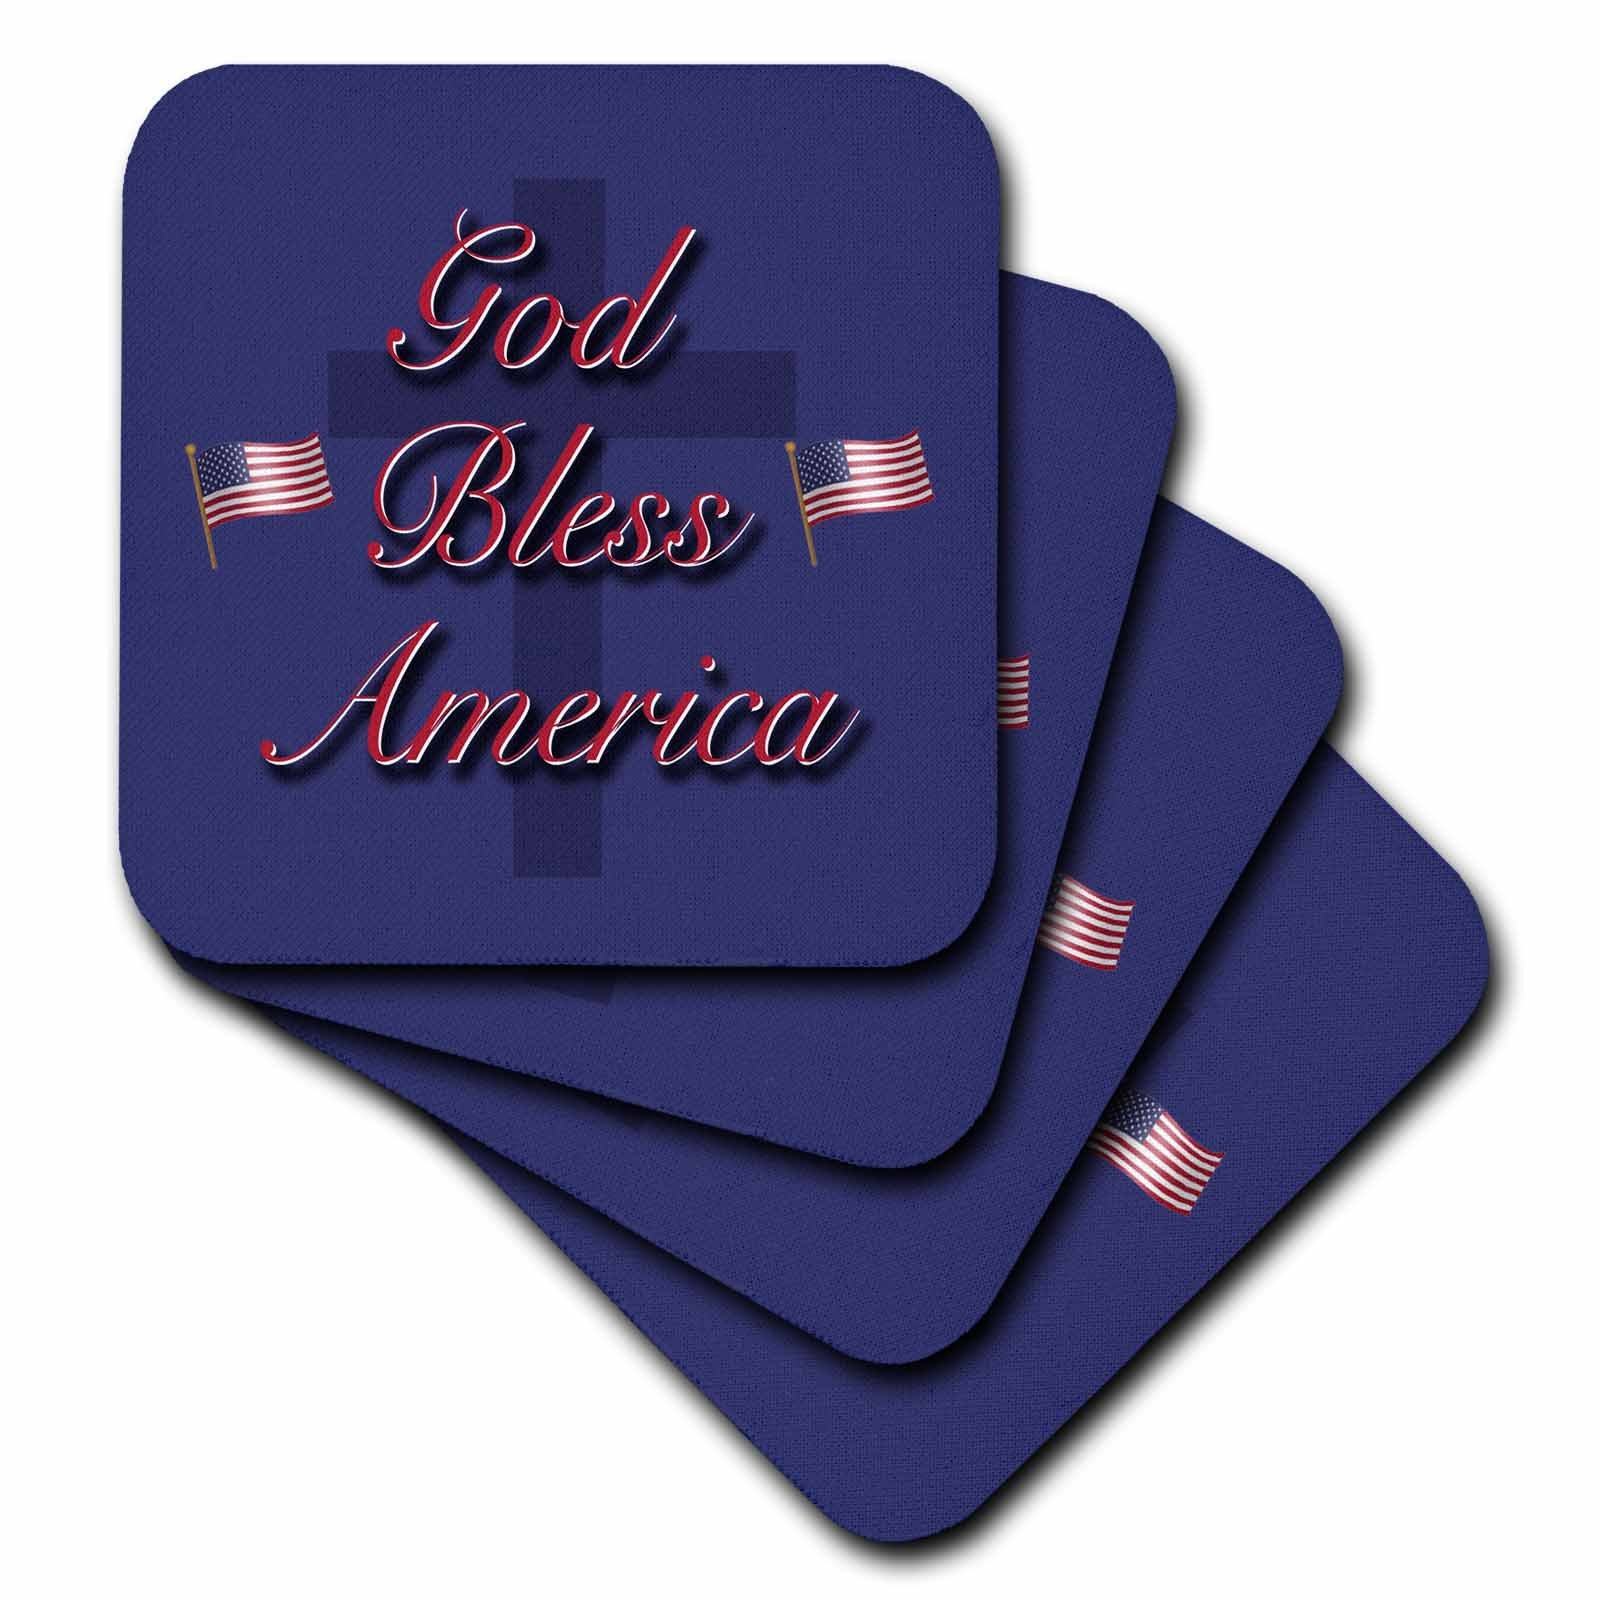 3dRose God Bless America in old glory red and white on a field of old glory blue with USA flags - Soft Coasters, set of 8 (cst_36109_2)